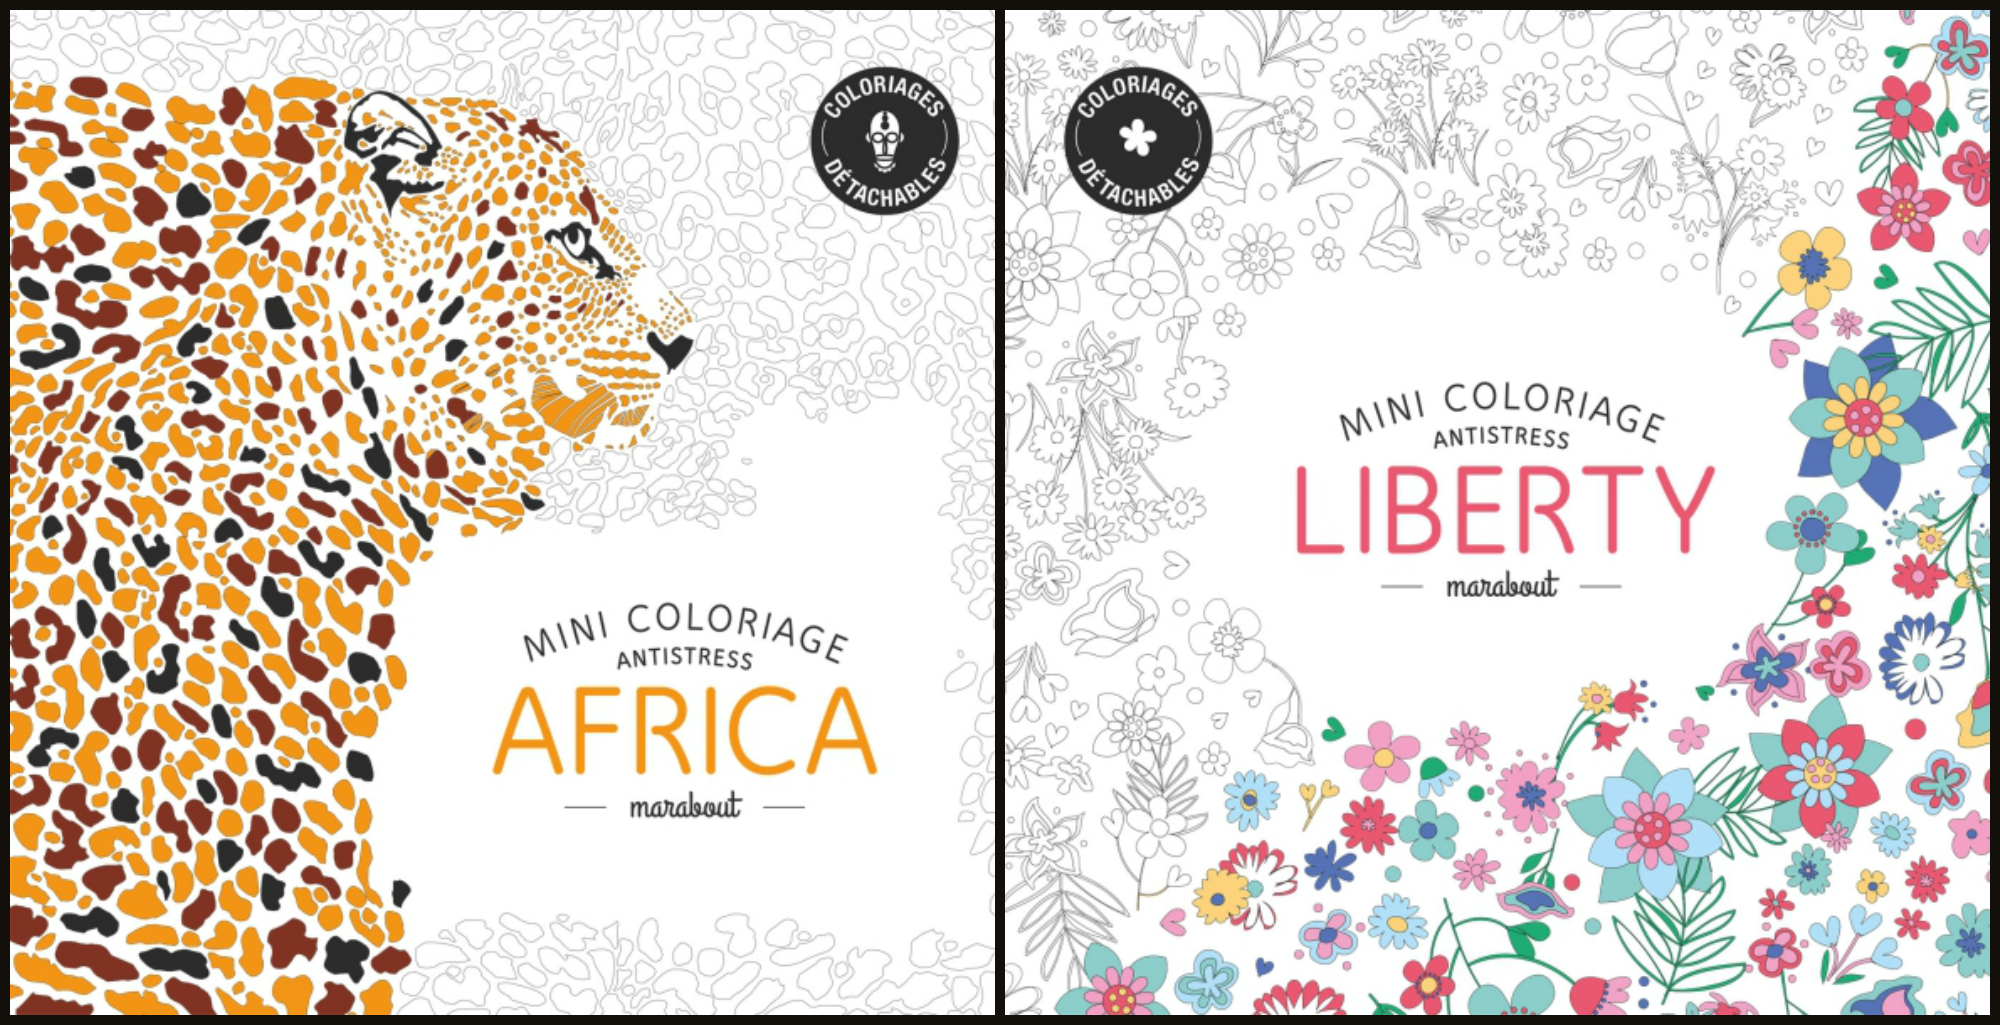 coloriage anti stress marabout